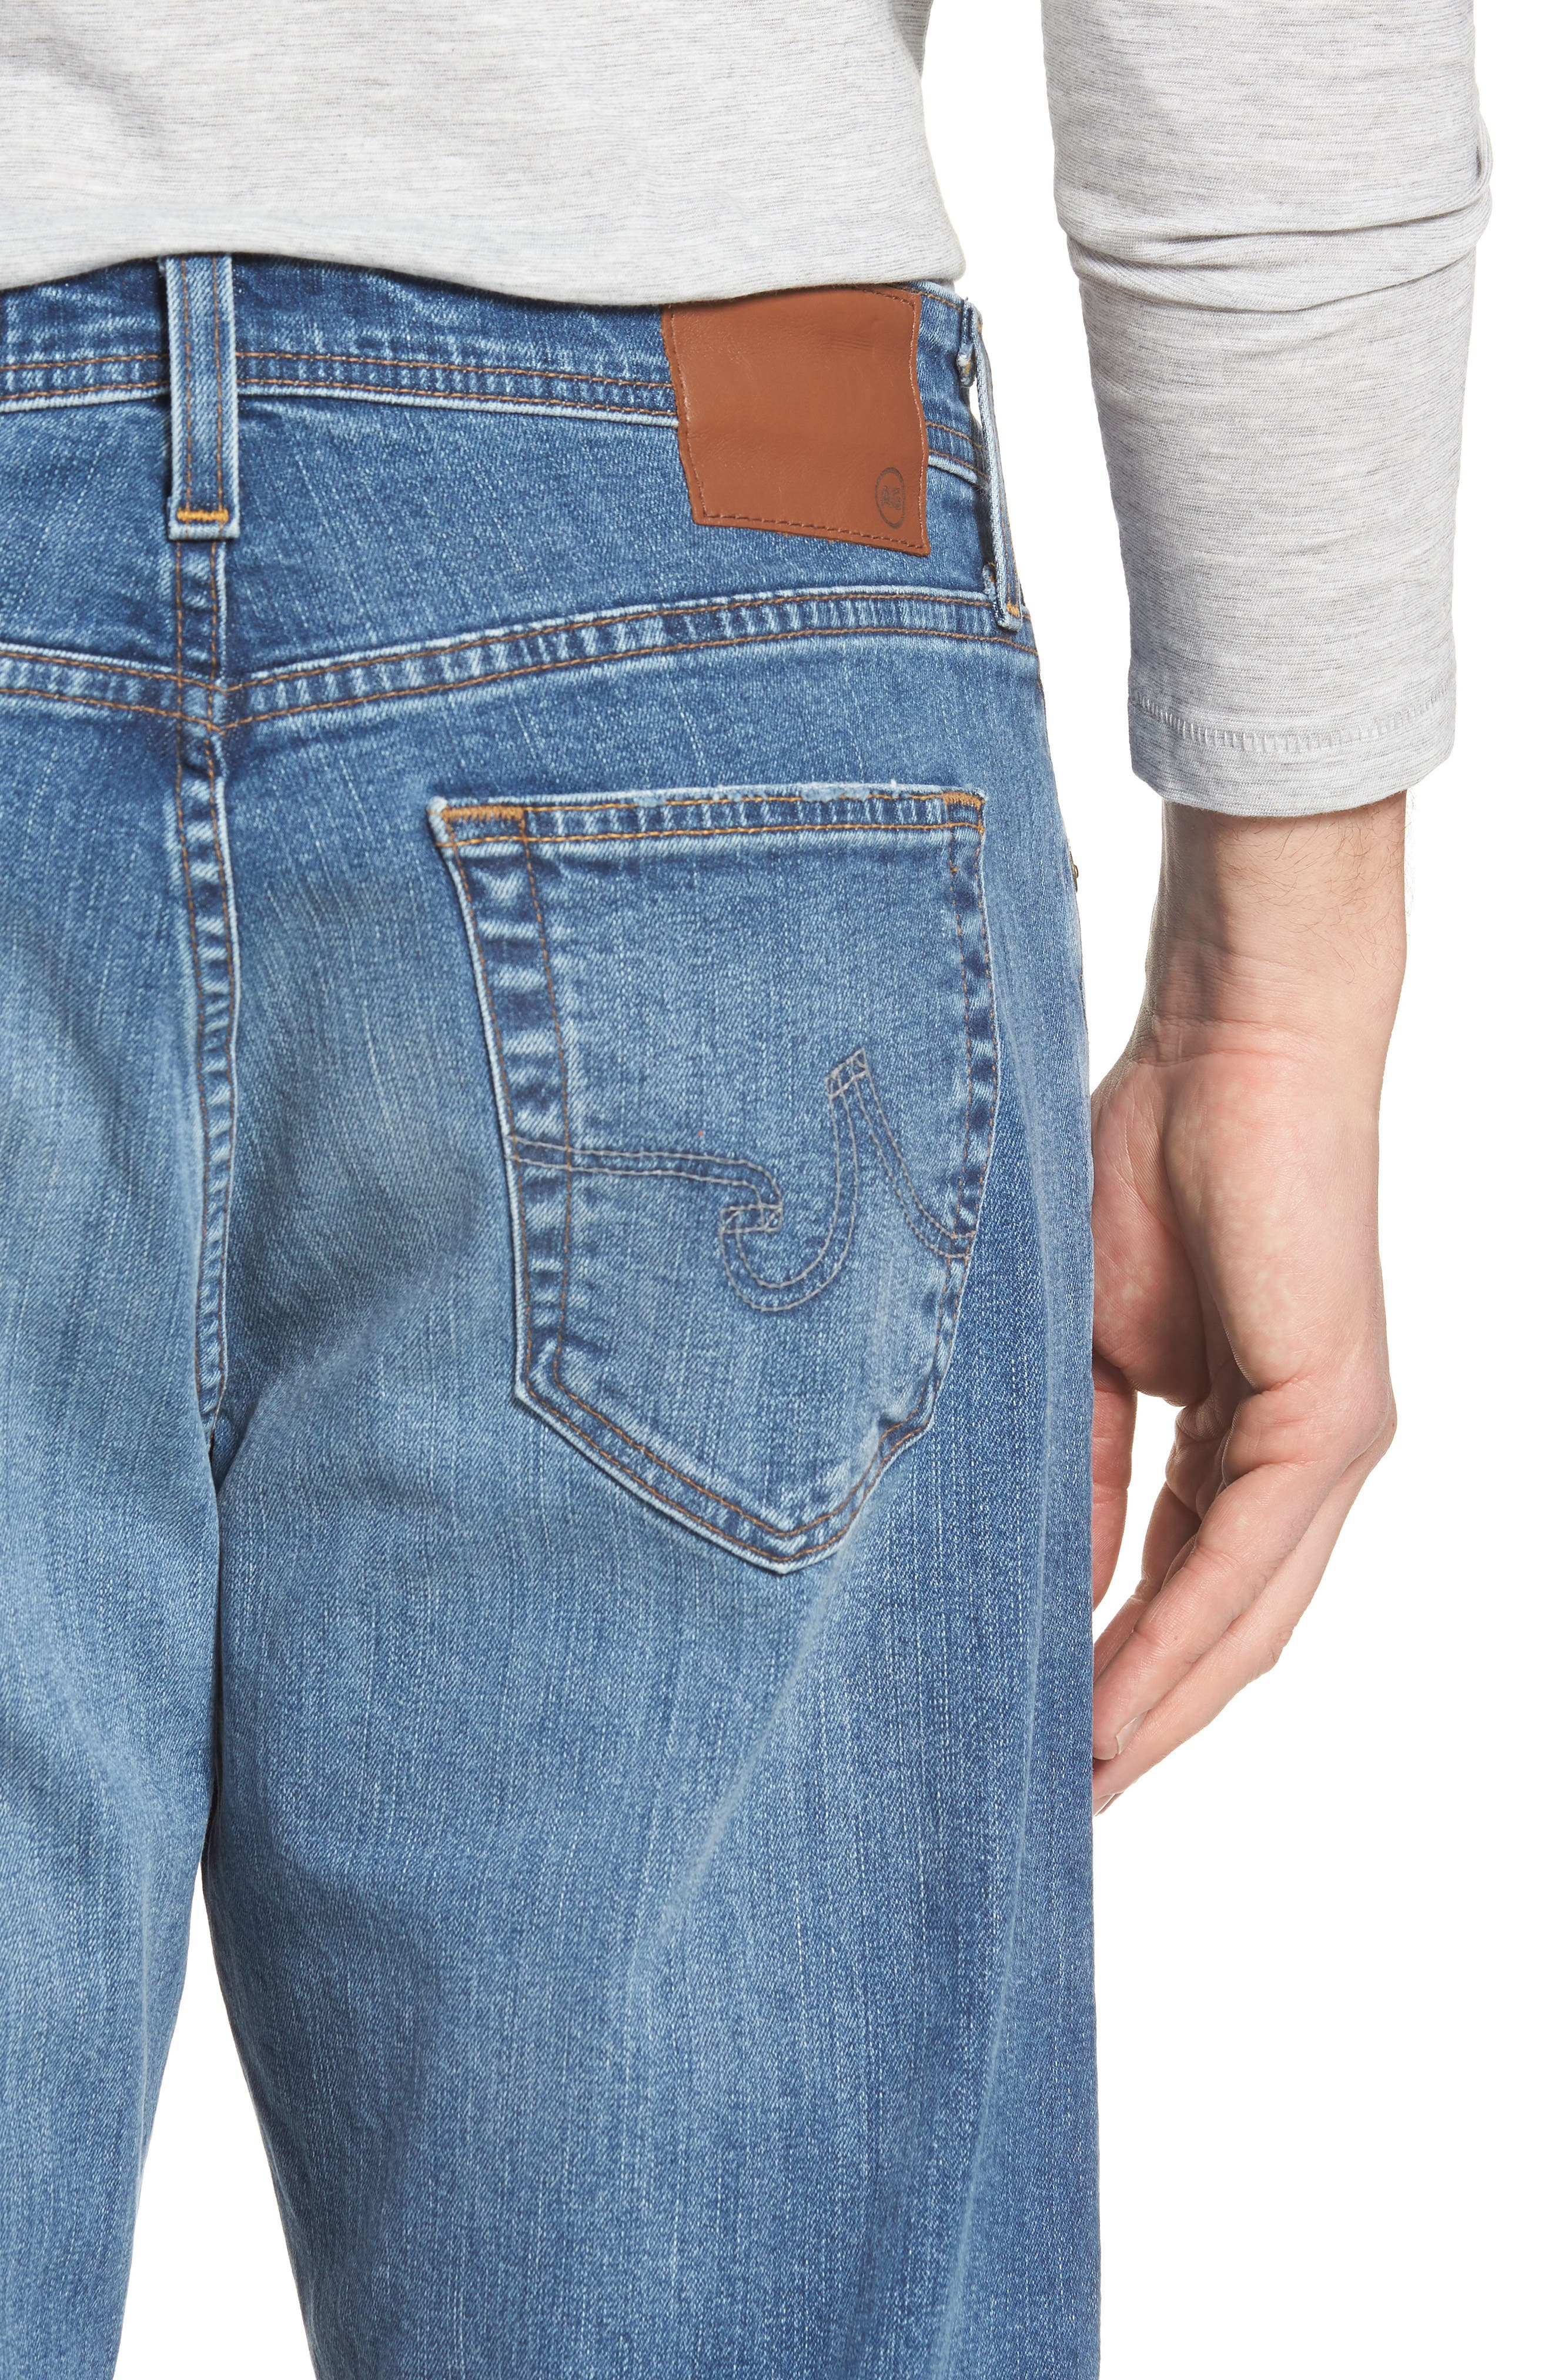 Ives Straight Leg Jeans,                             Alternate thumbnail 4, color,                             485